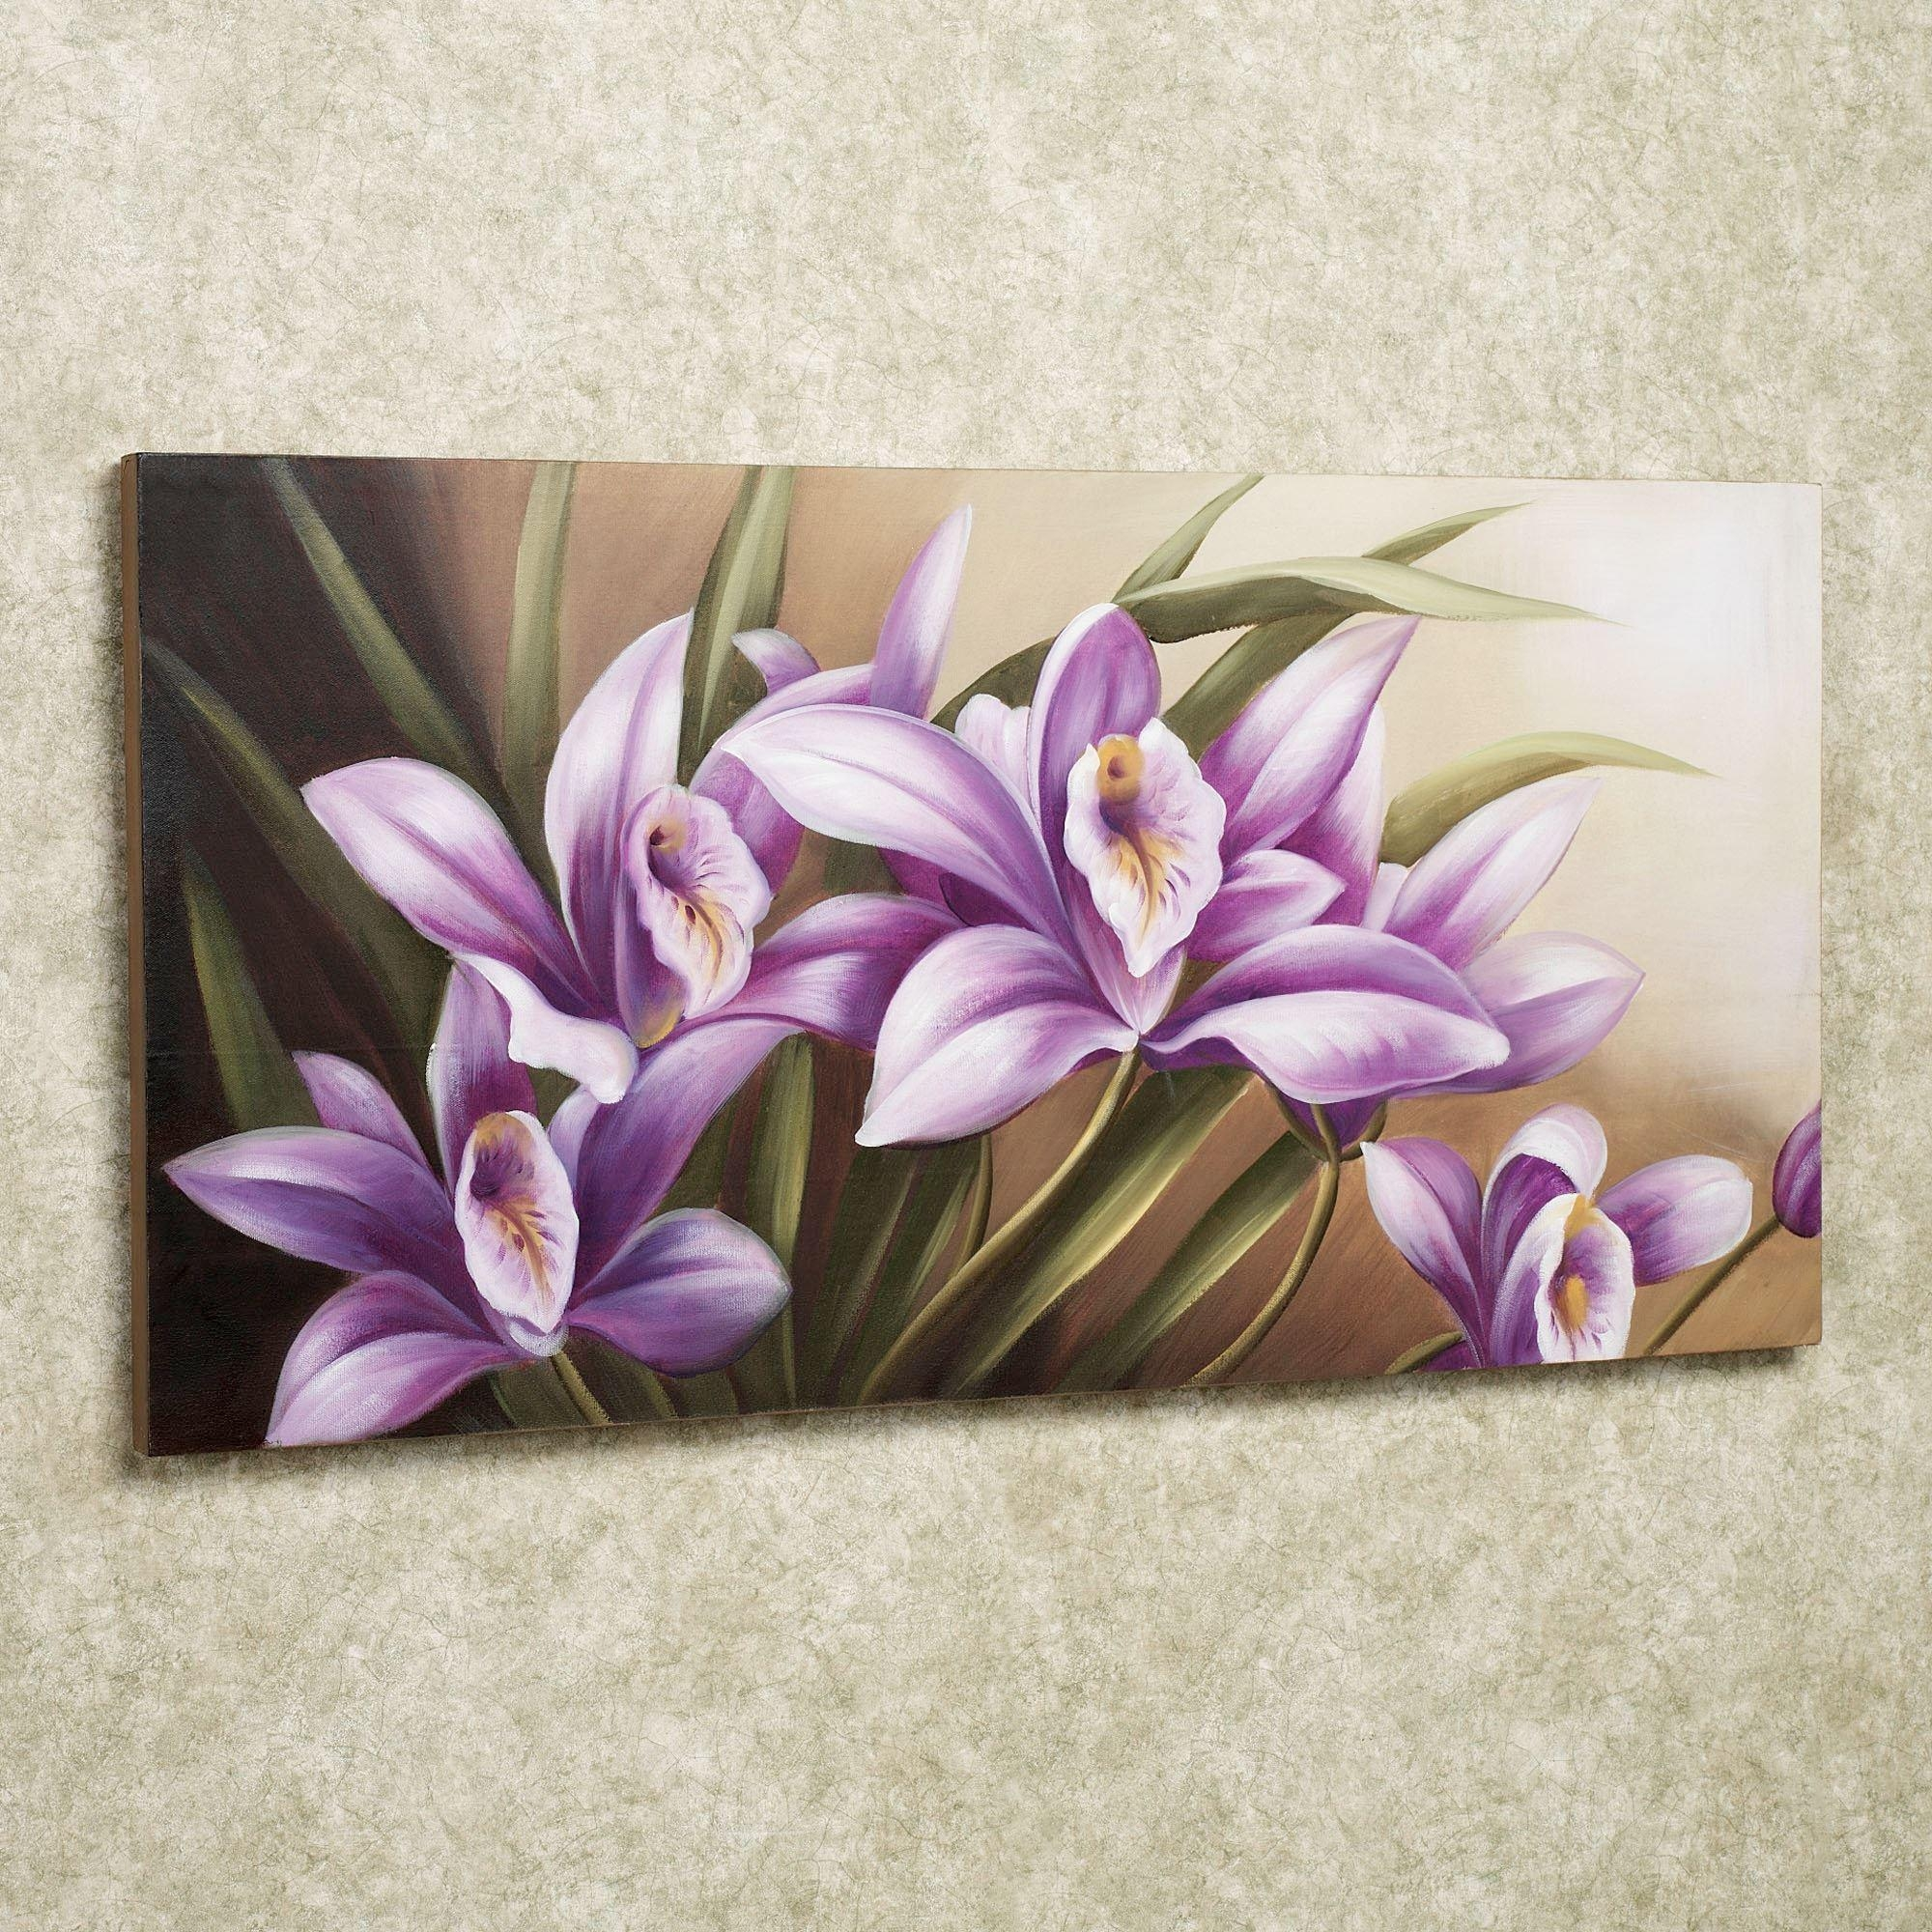 Wild Orchid Handpainted Floral Canvas Wall Art Pertaining To Flower Wall Art Canvas (Image 20 of 20)